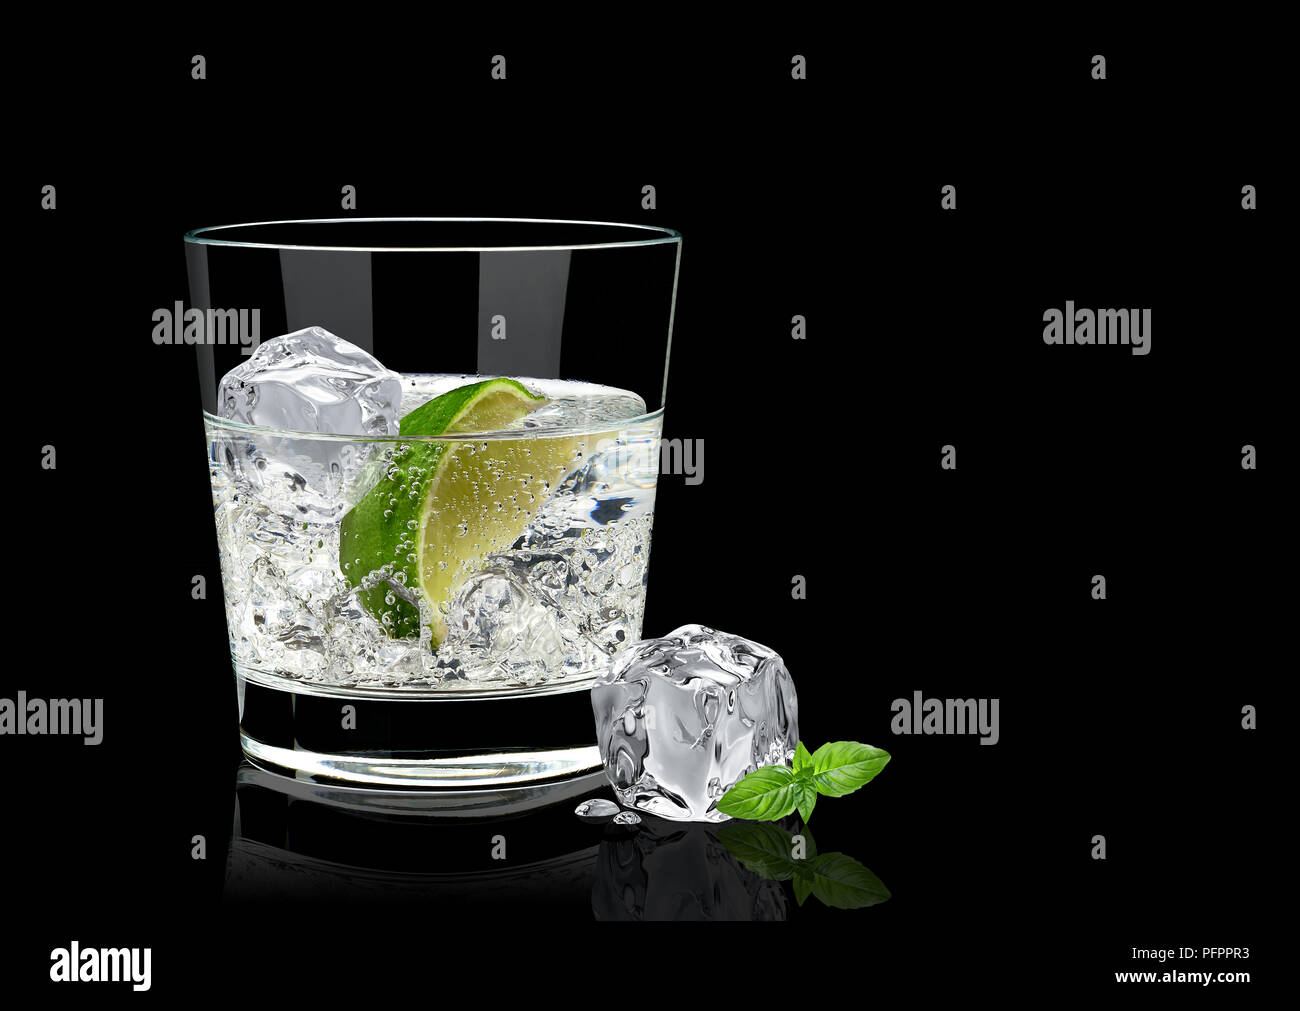 Gin tonic or vodka lime and basil isolated on black background - Stock Image